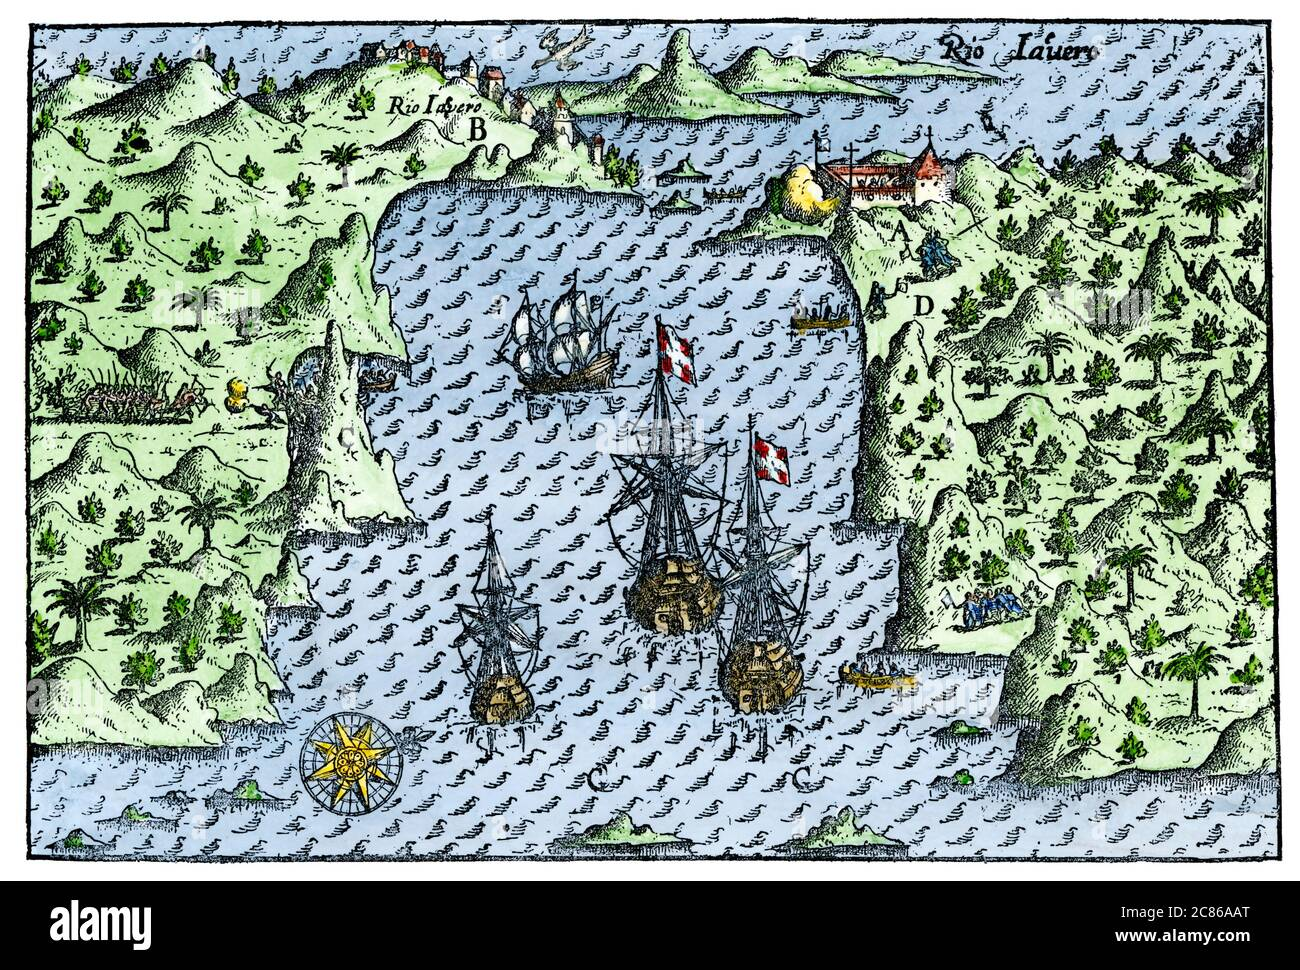 Rio de Janeiro in 1599. Hand-colored woodcut from Olivier du Noort, 1602 Stock Photo